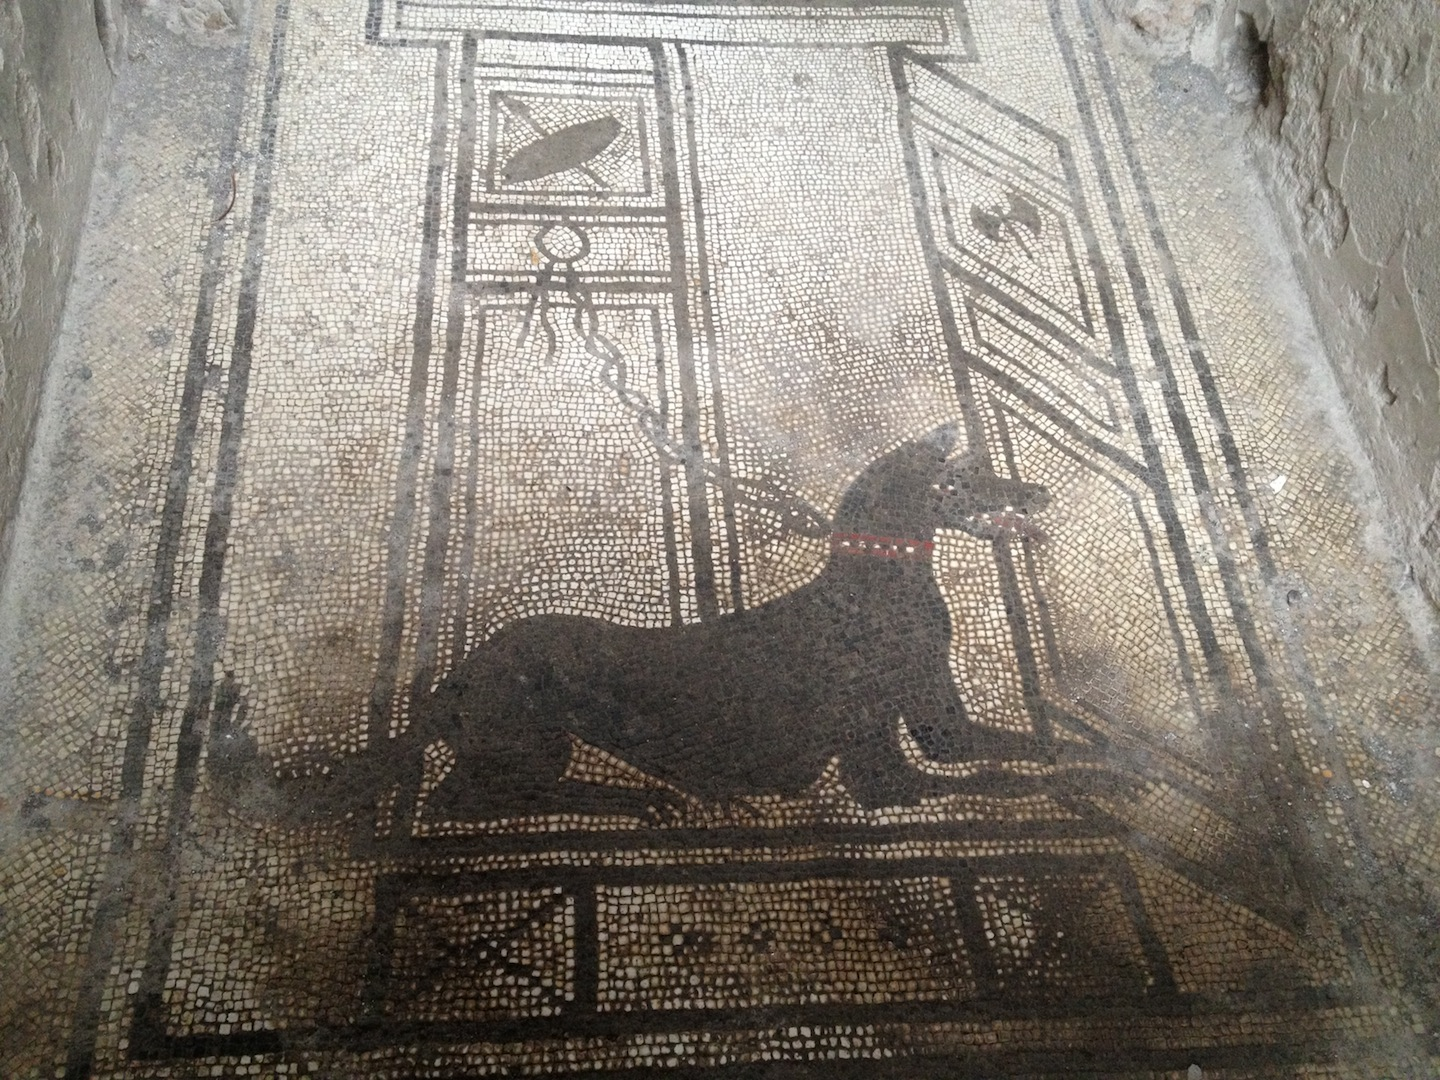 Pompeii-Iconography-jessewaugh.com-32-Dog.jpg